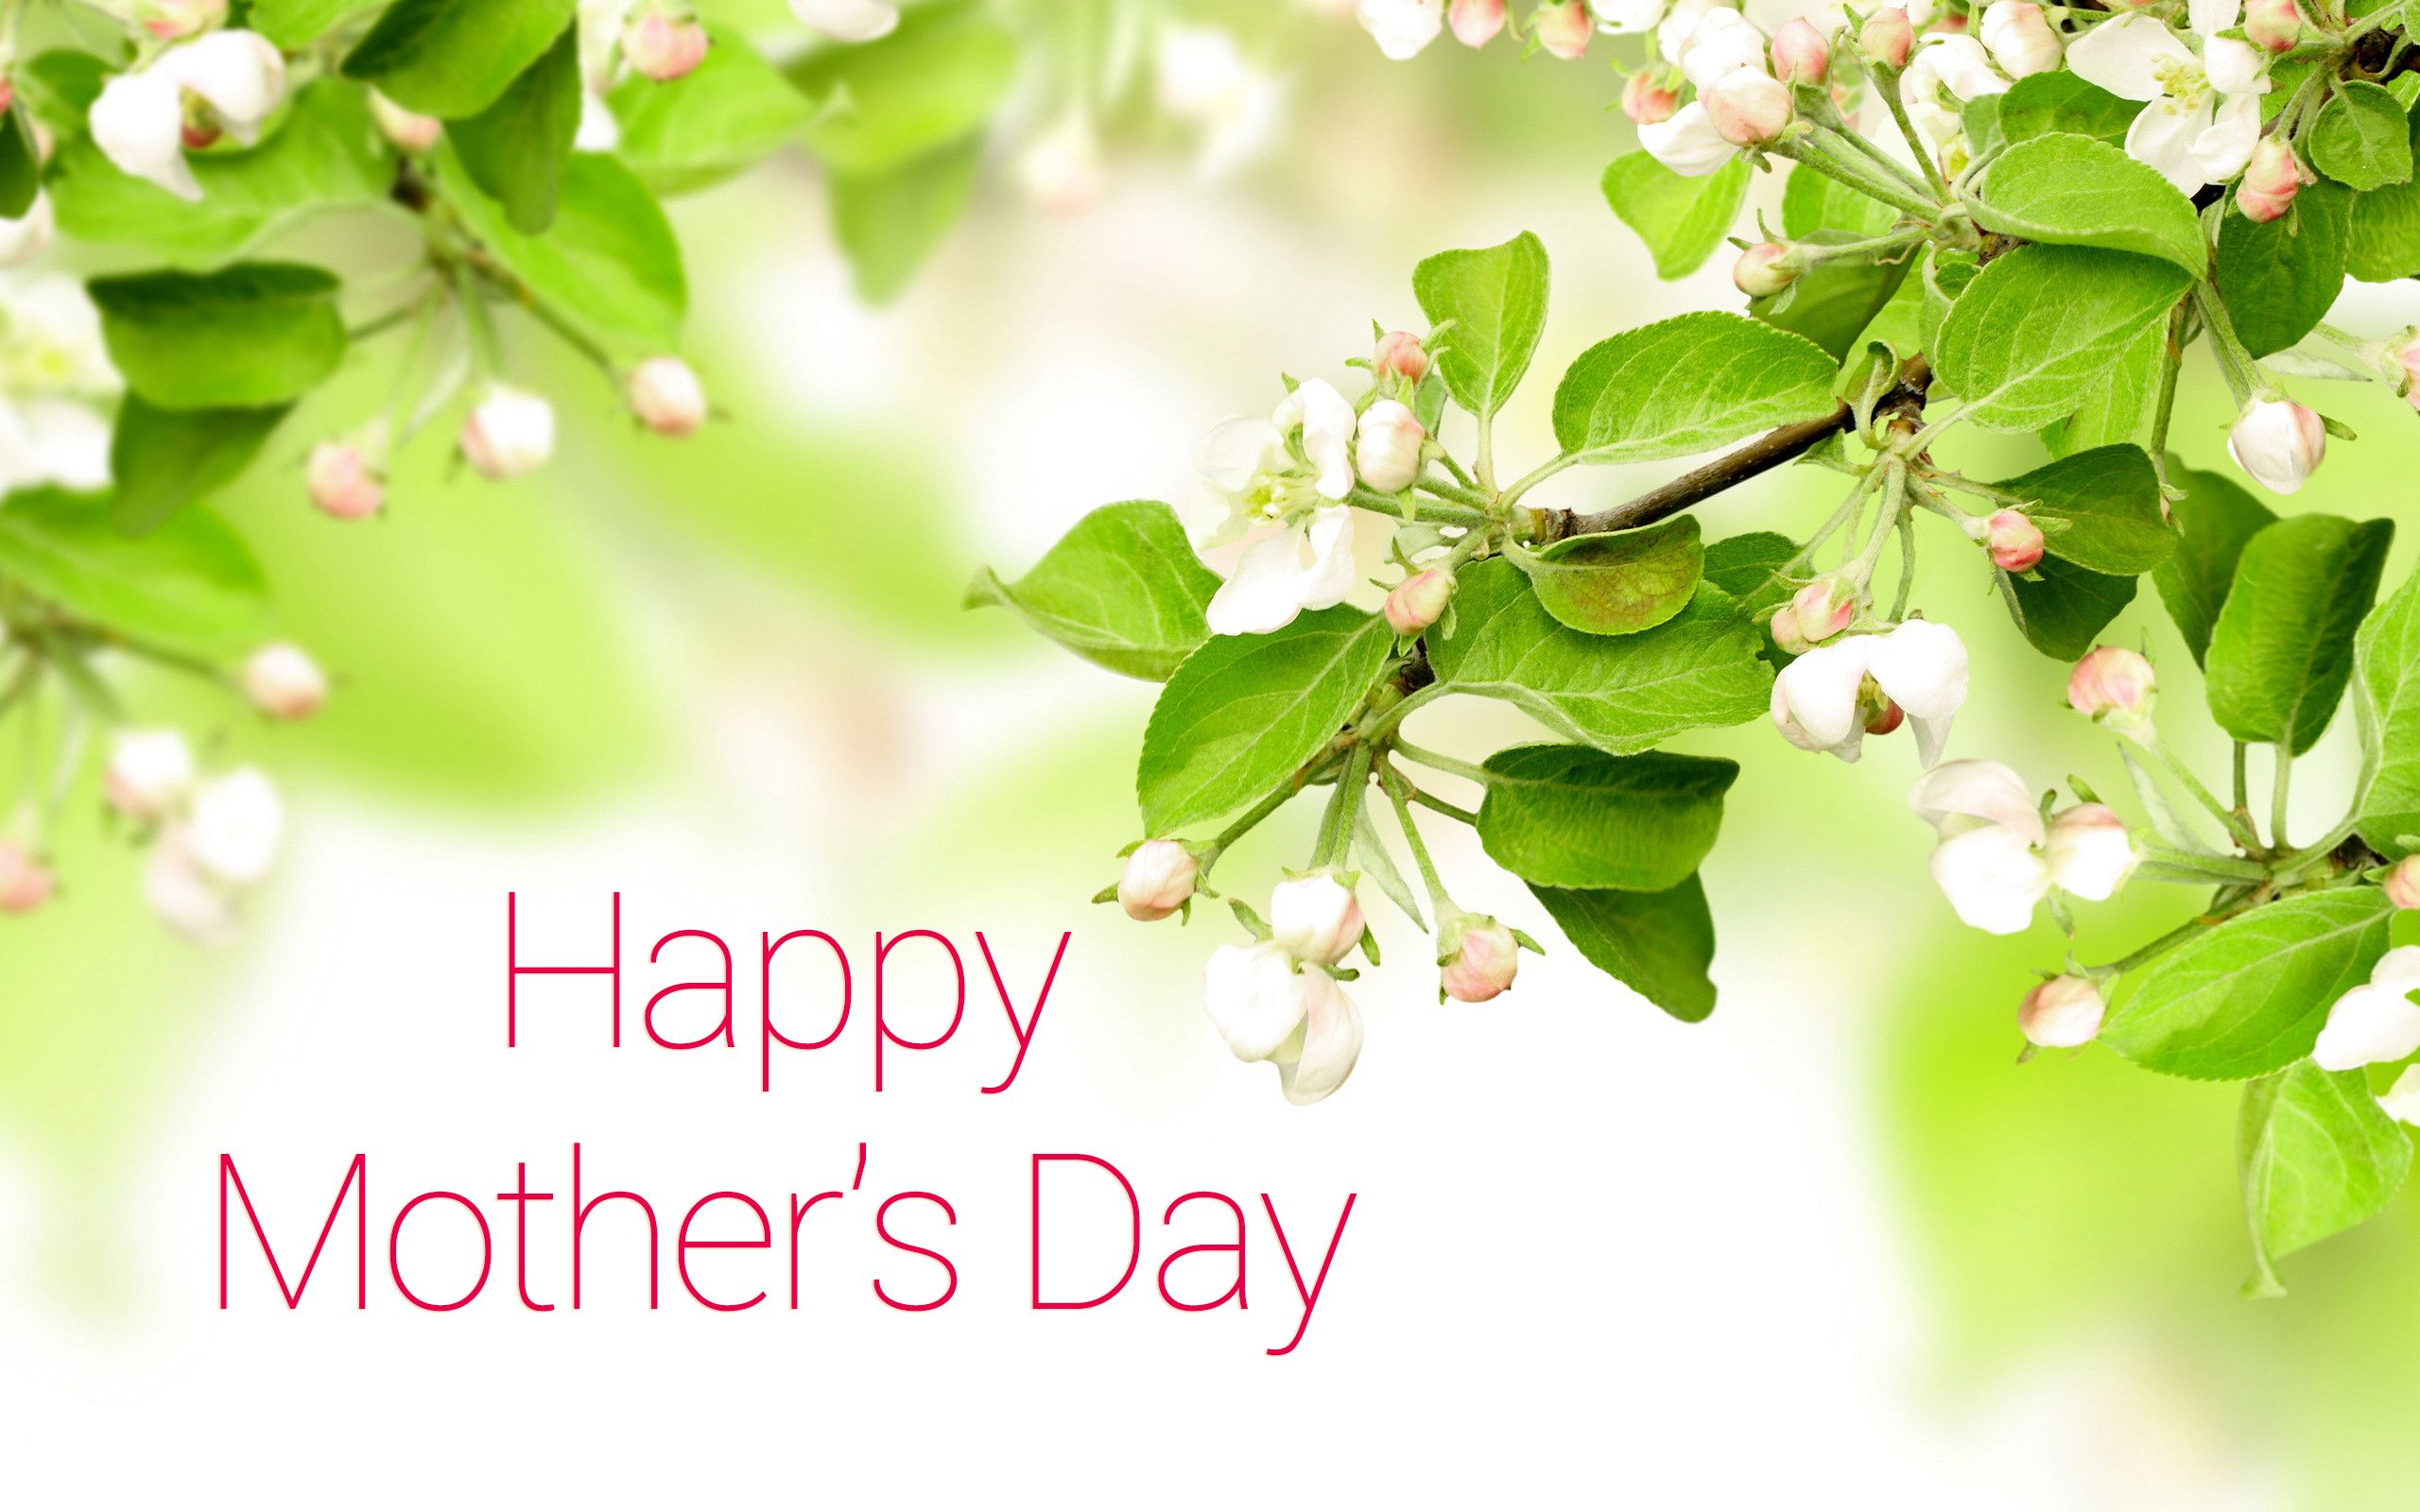 Happy Mother S Day Hd Wallpaper Background Image 2560x1600